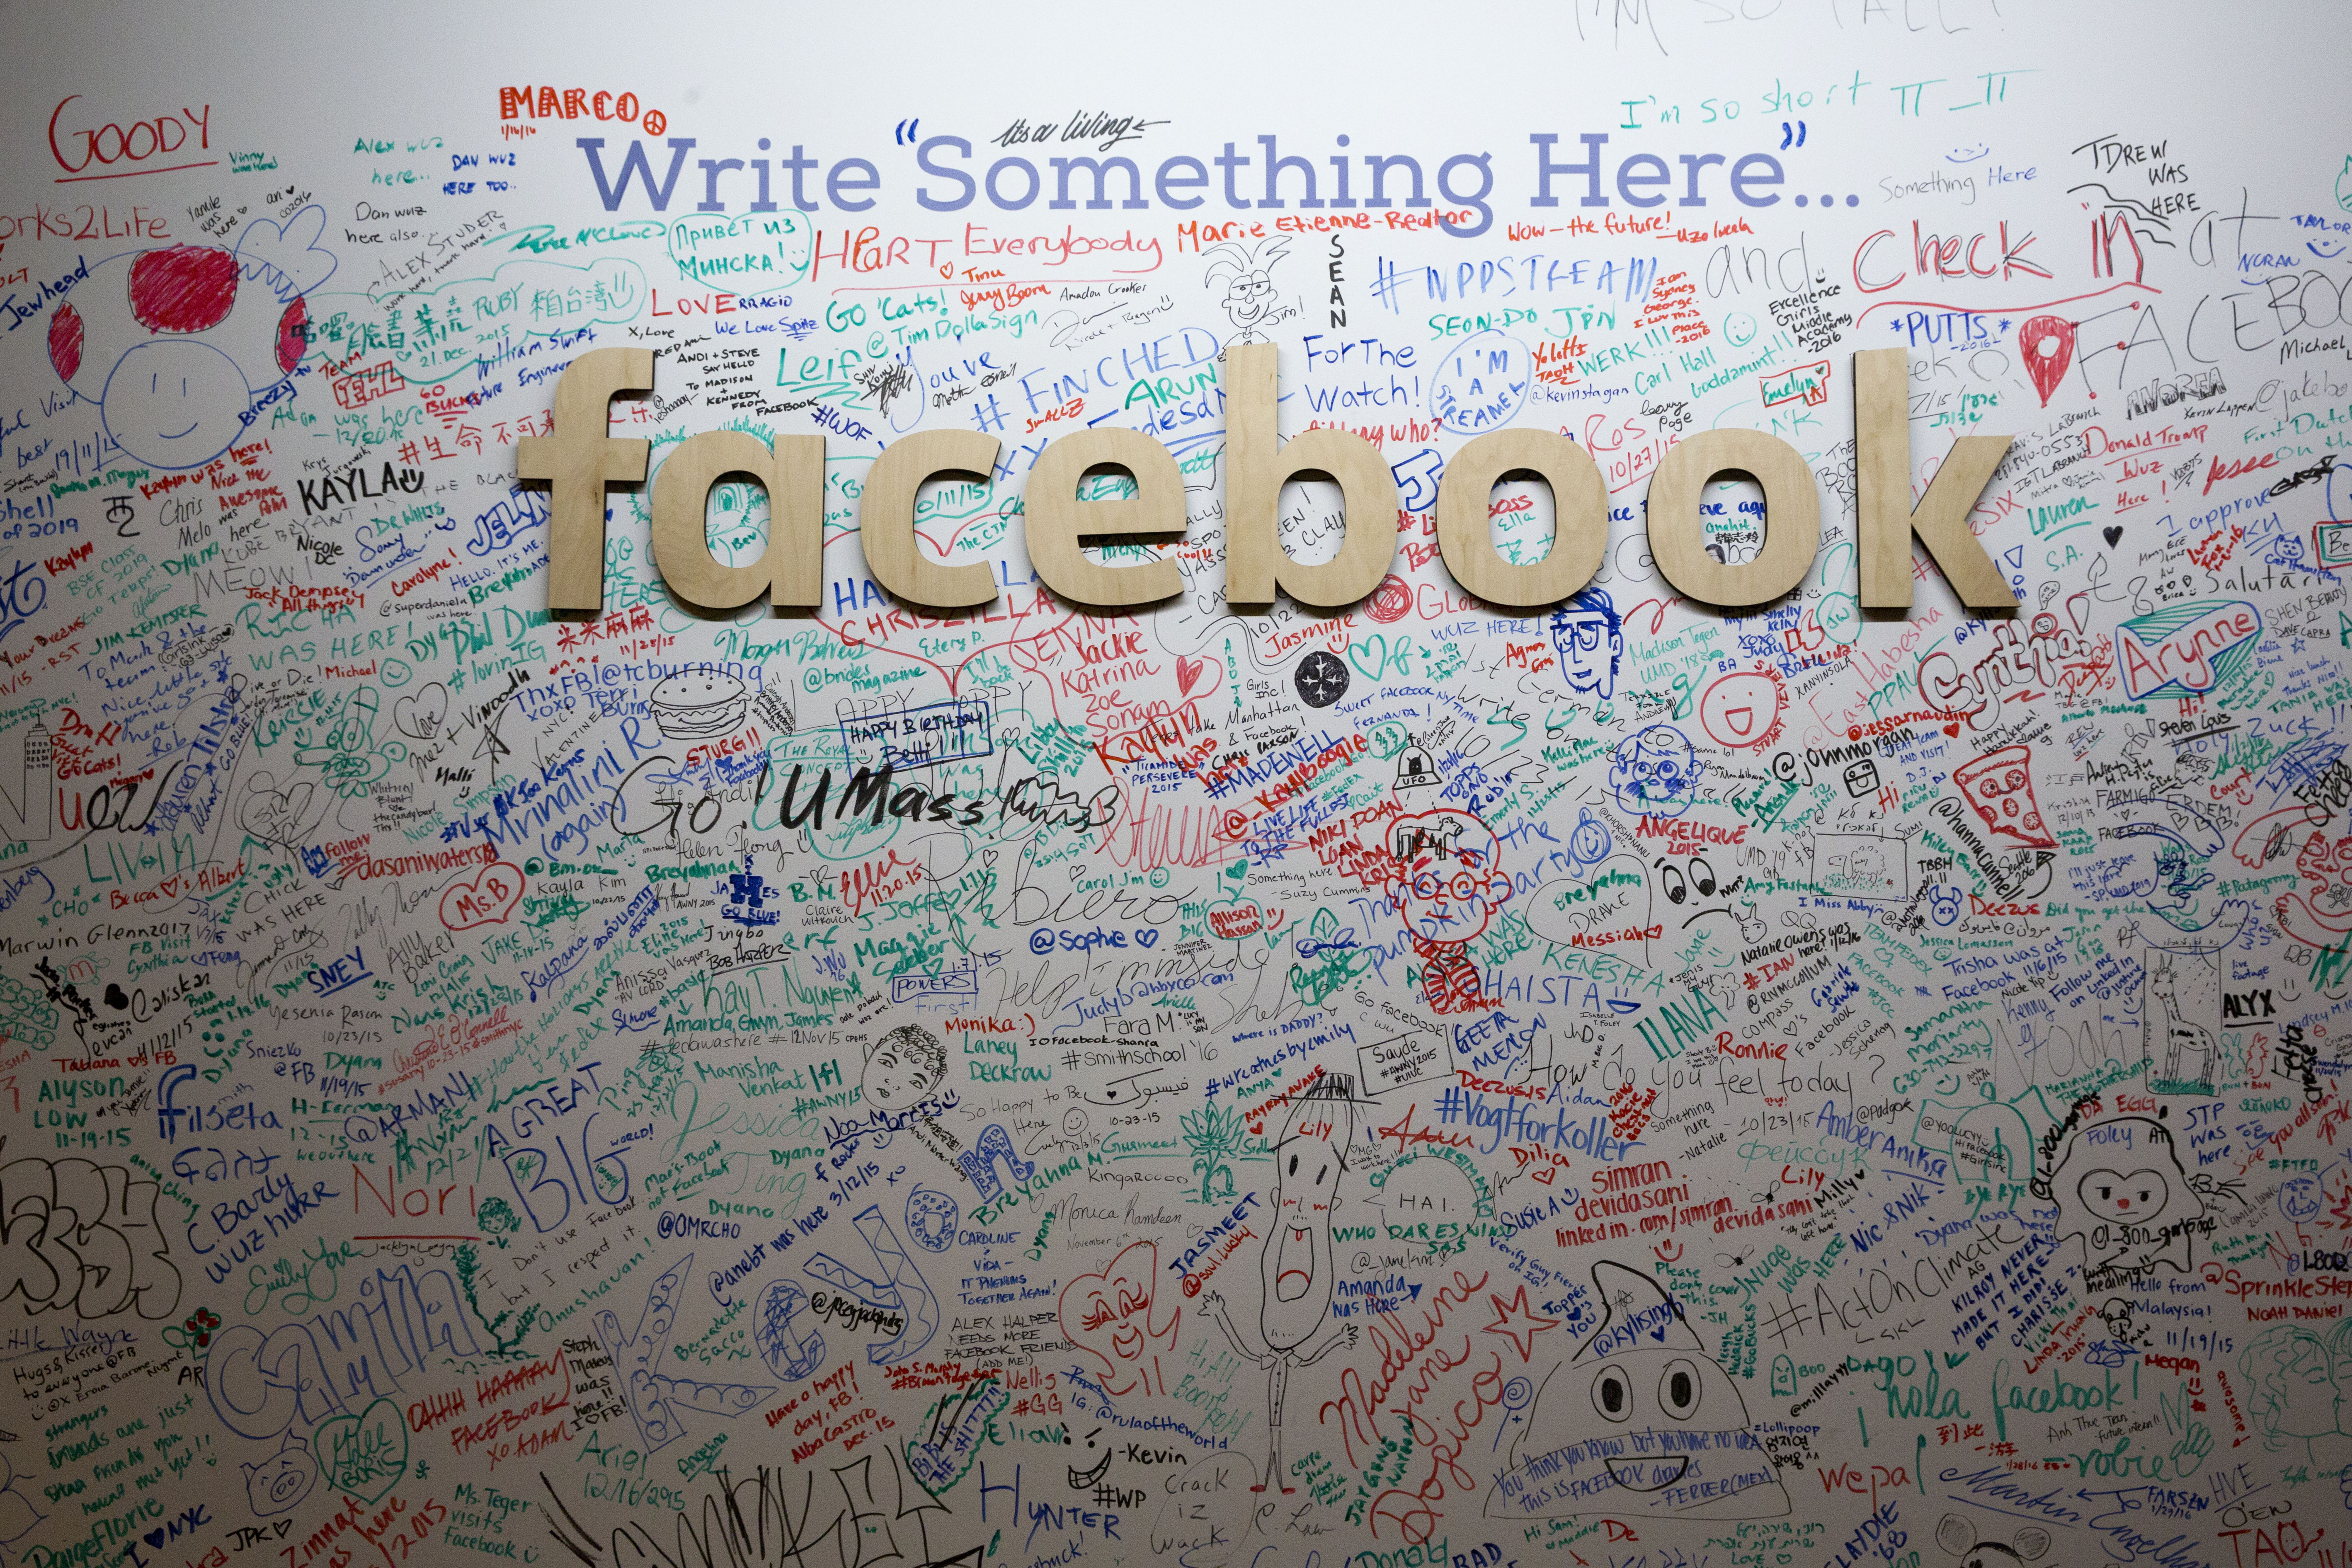 A signature wall at Facebook's New York office, photographed Feb. 18.